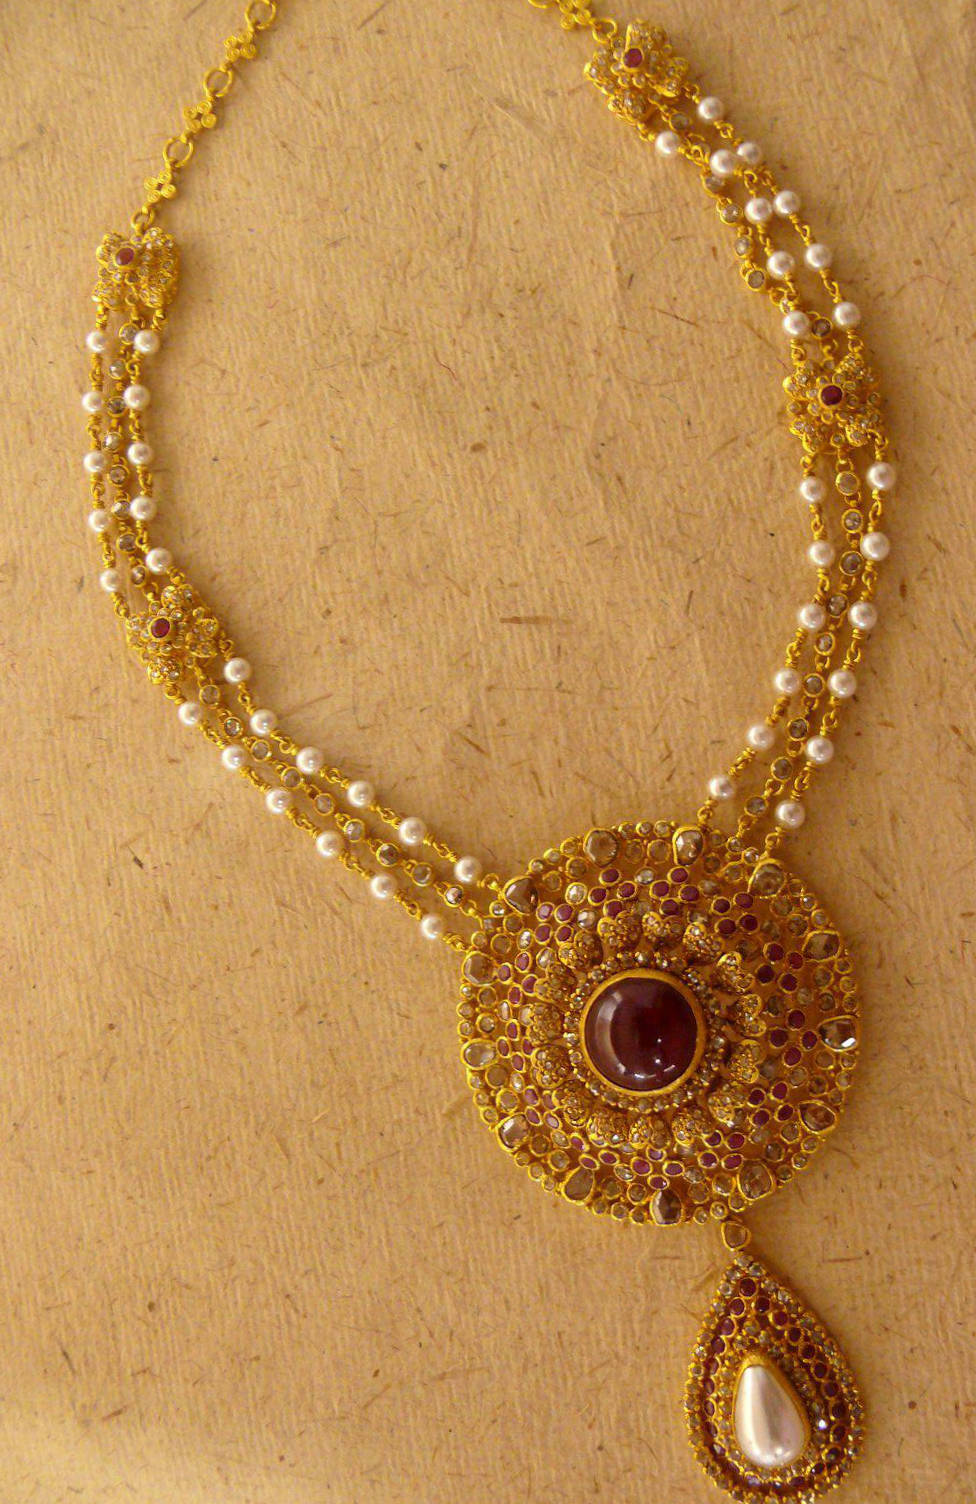 Uncut diamond necklace jewellery designs for Simple gold ornaments